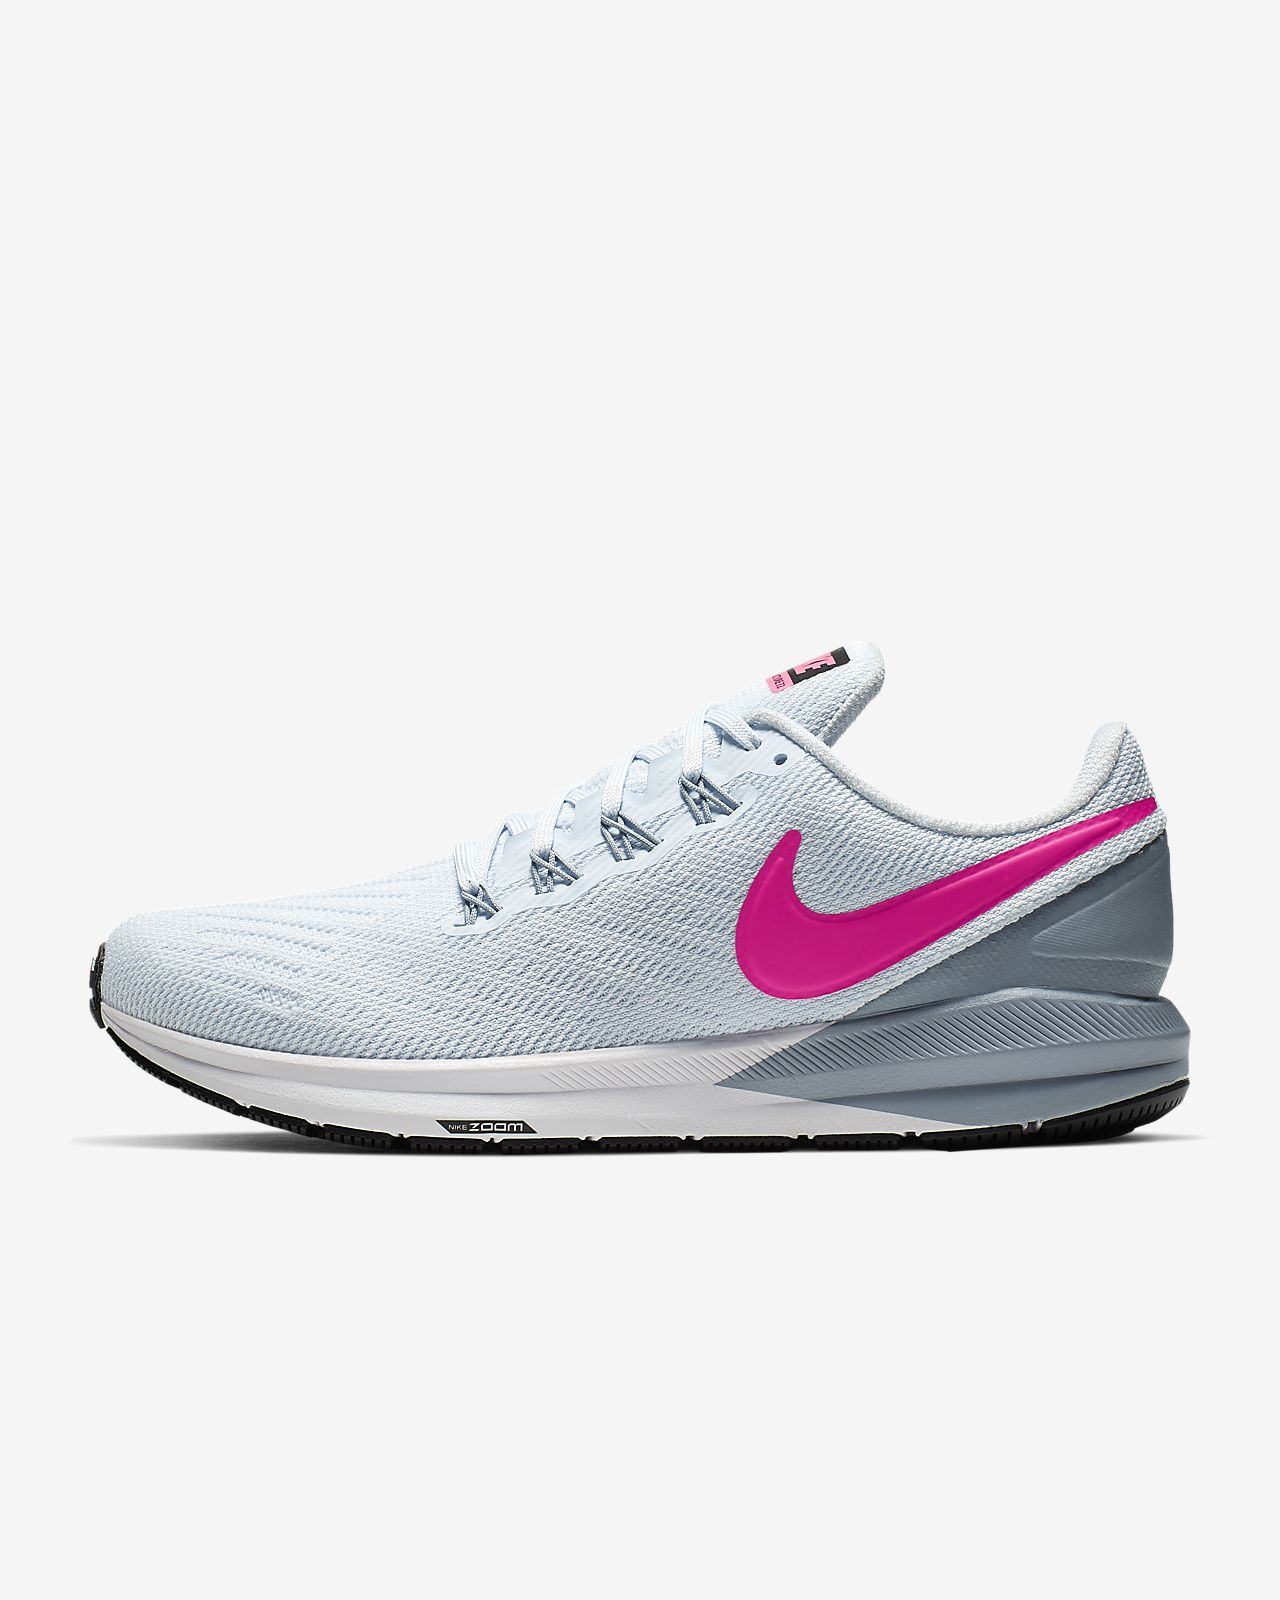 Nike Air Zoom Structure 22 女款跑鞋